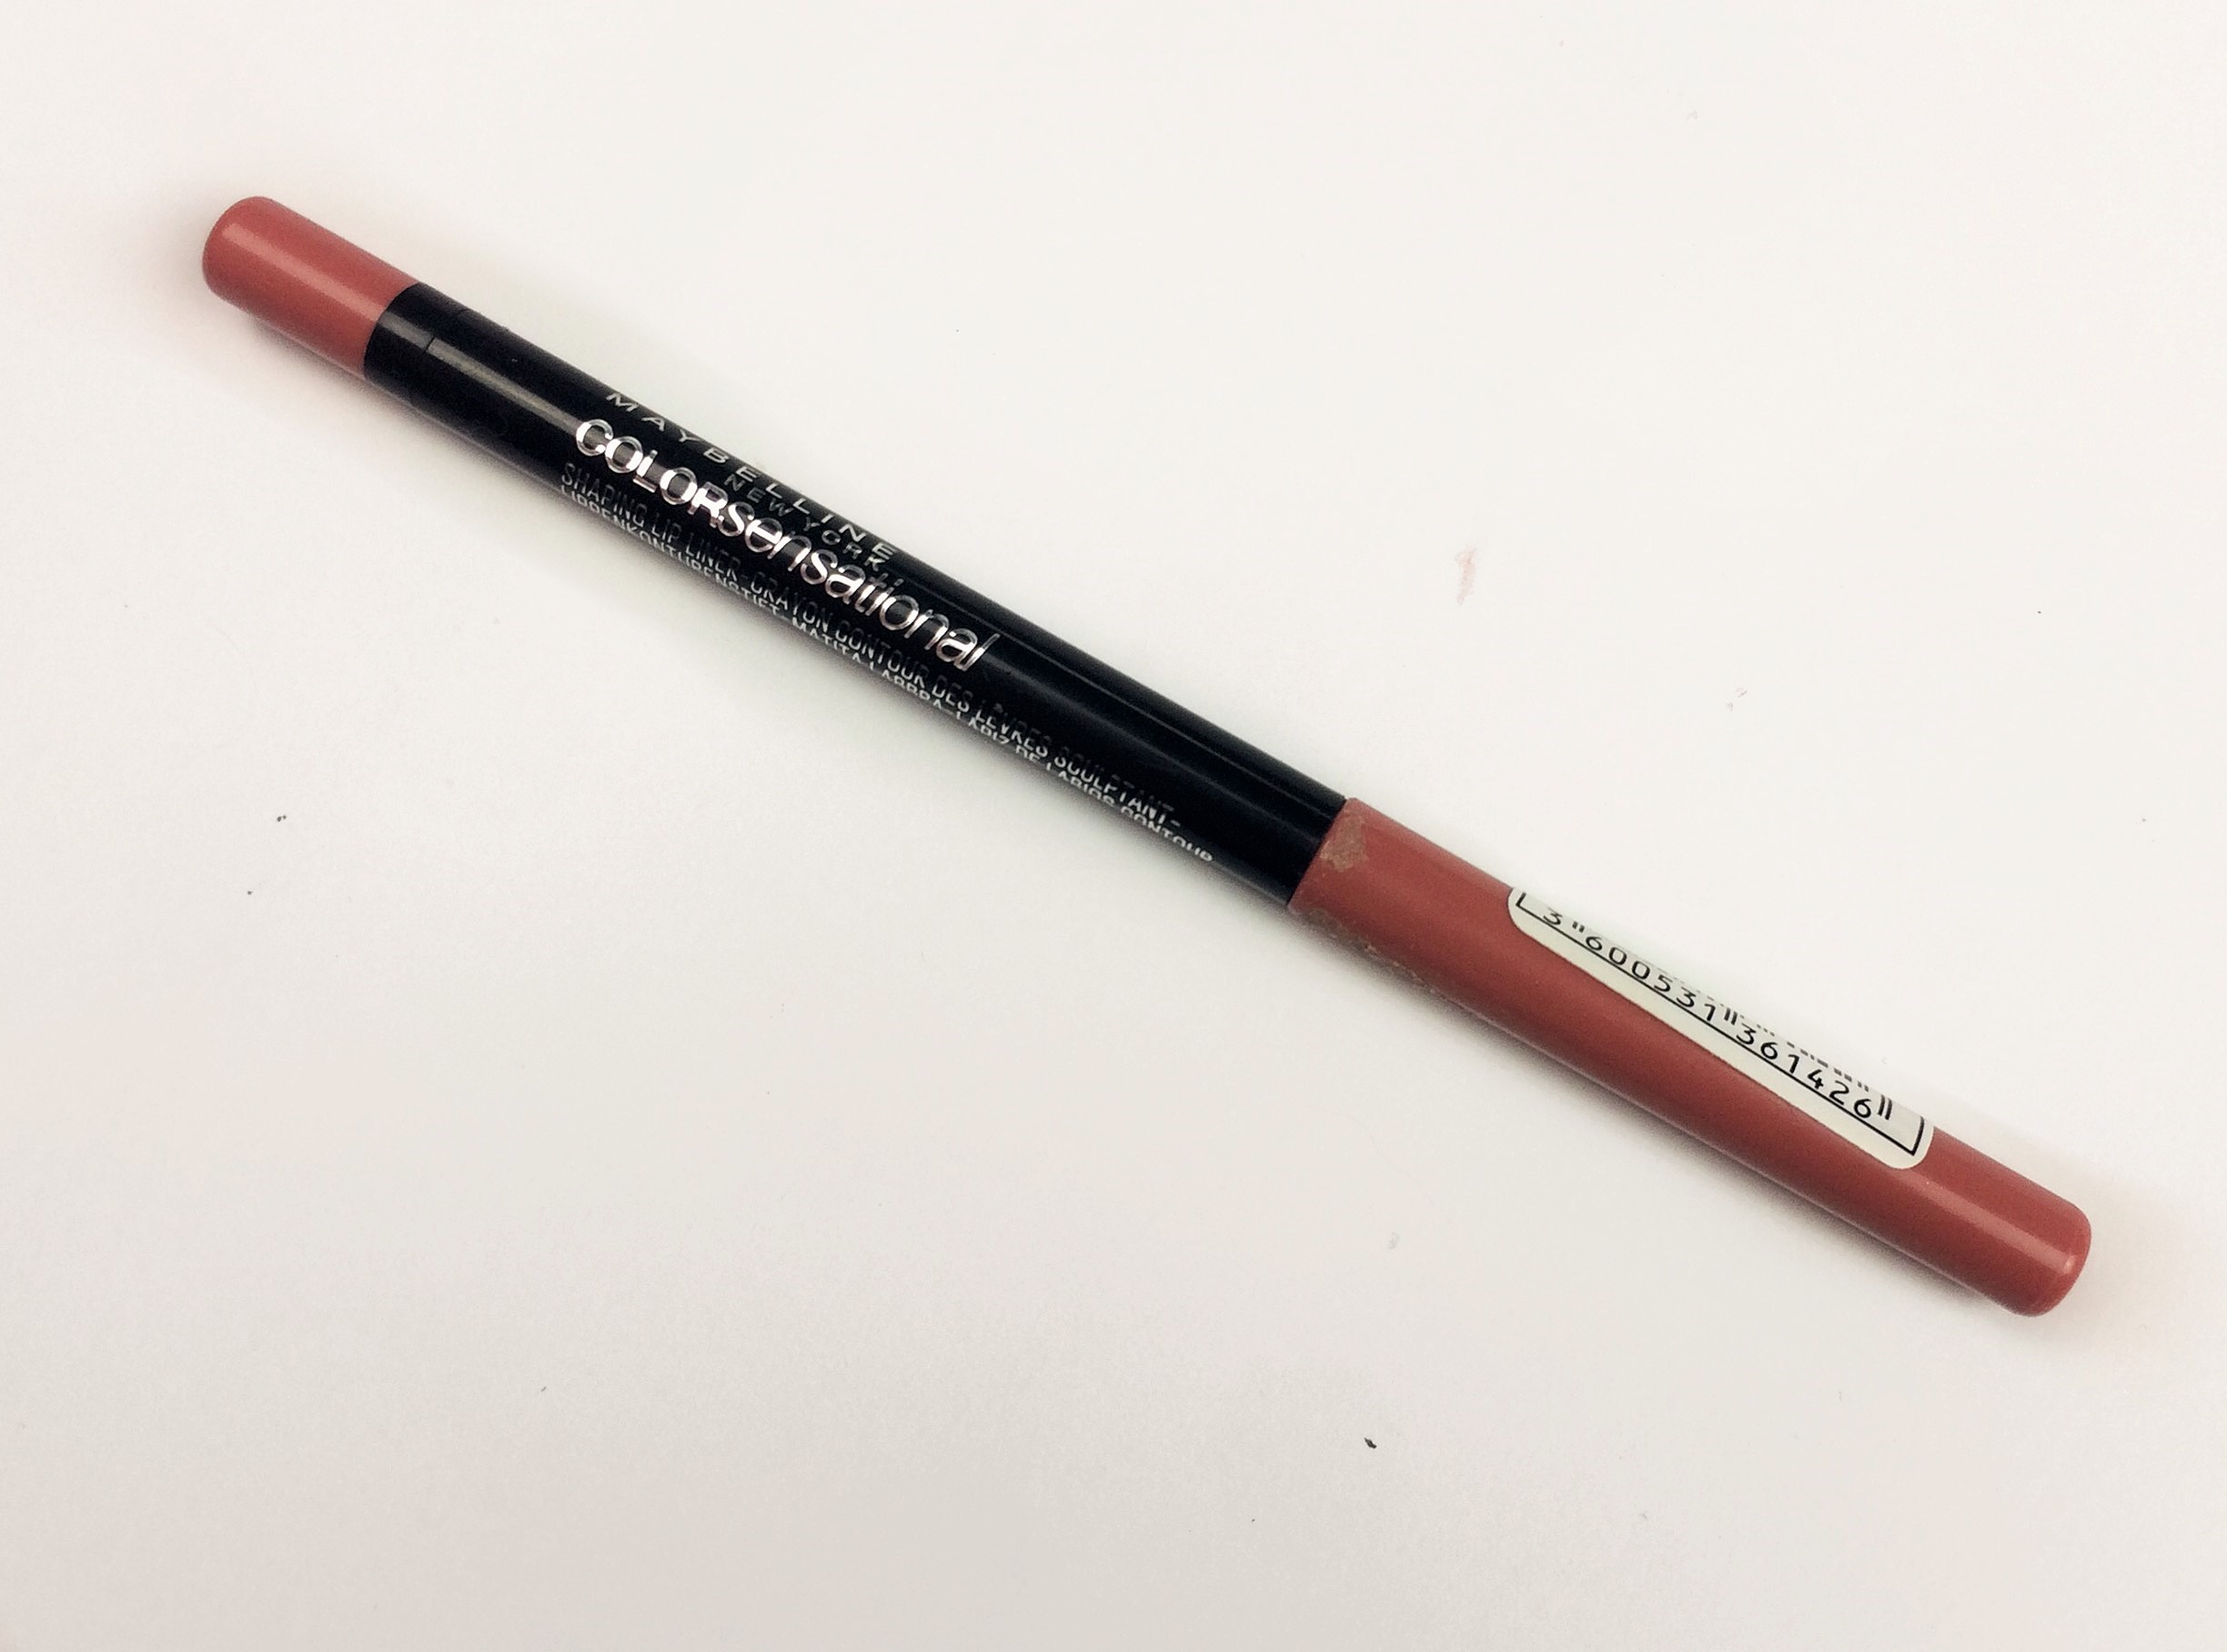 Maybelline Dusty Rose Color Sensational Shaping Lip Liner (2)